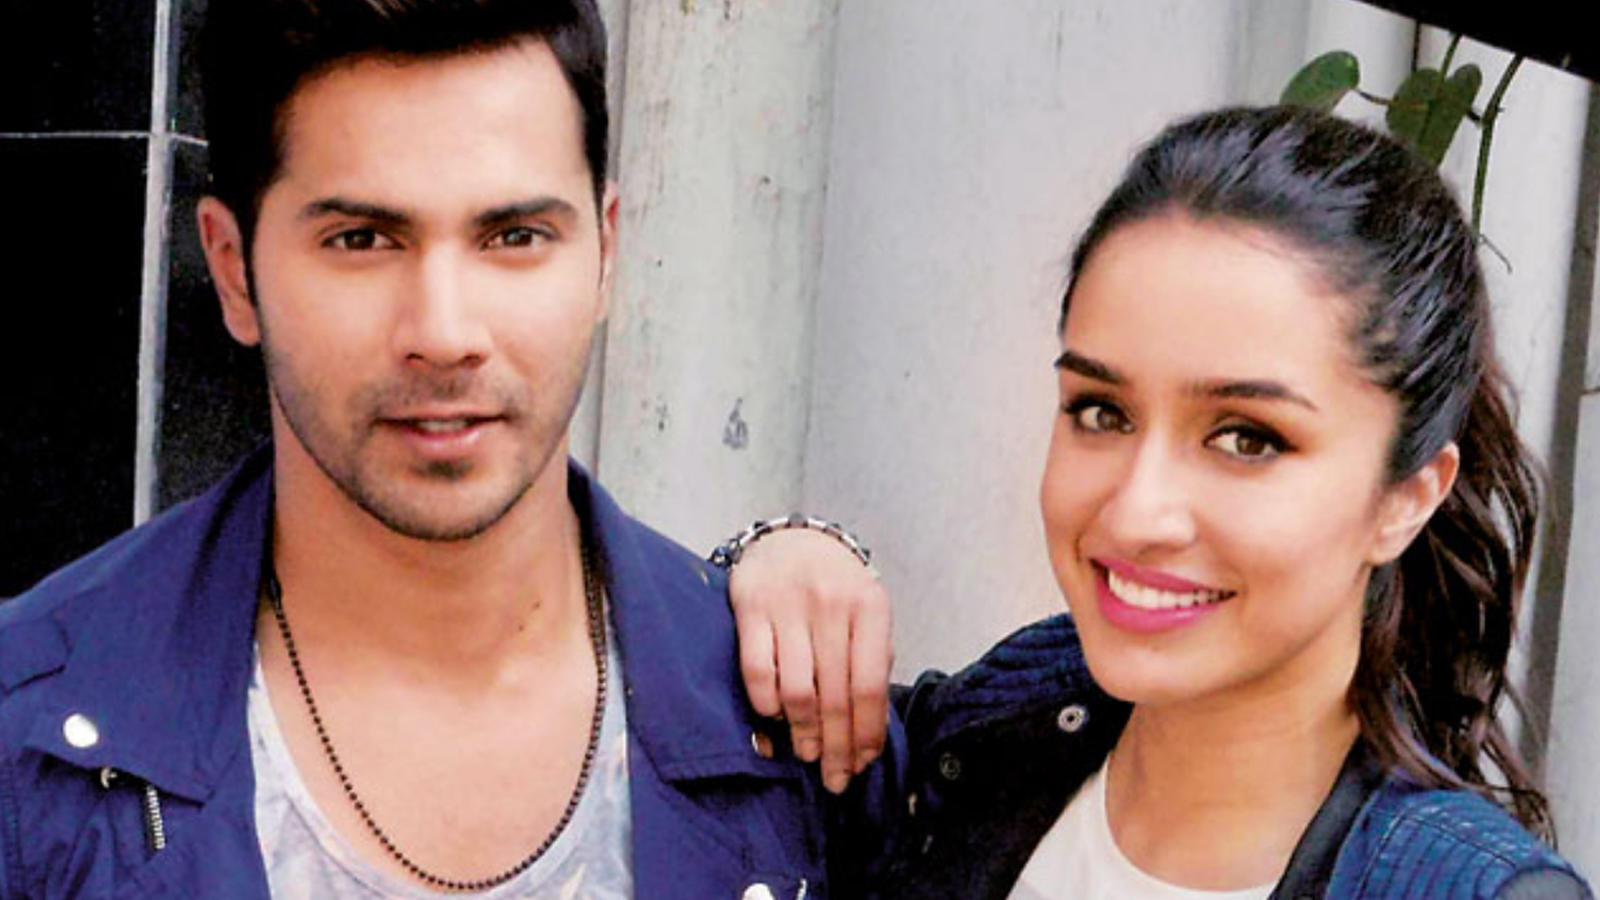 Varun Dhawan, Shraddha Kapoor to reunite for 'ABCD 3'